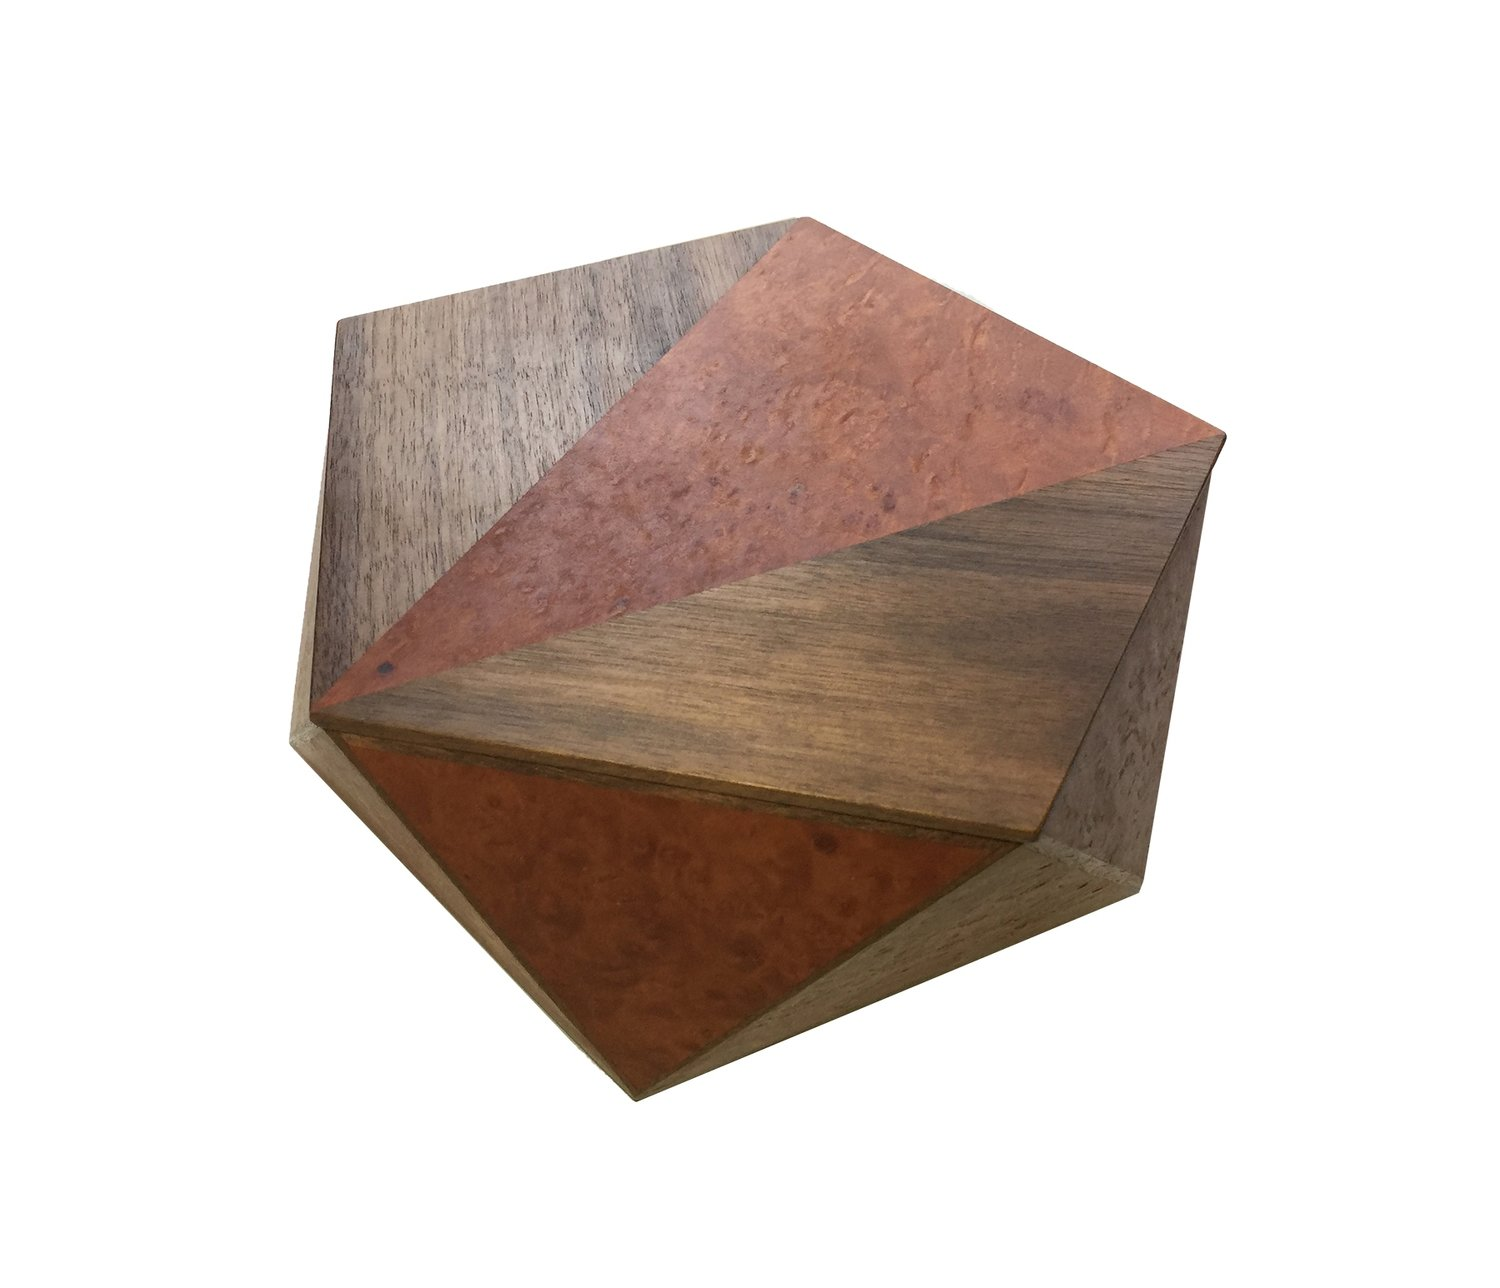 Pentagonal Box Madrona Burl with Walnut Detail